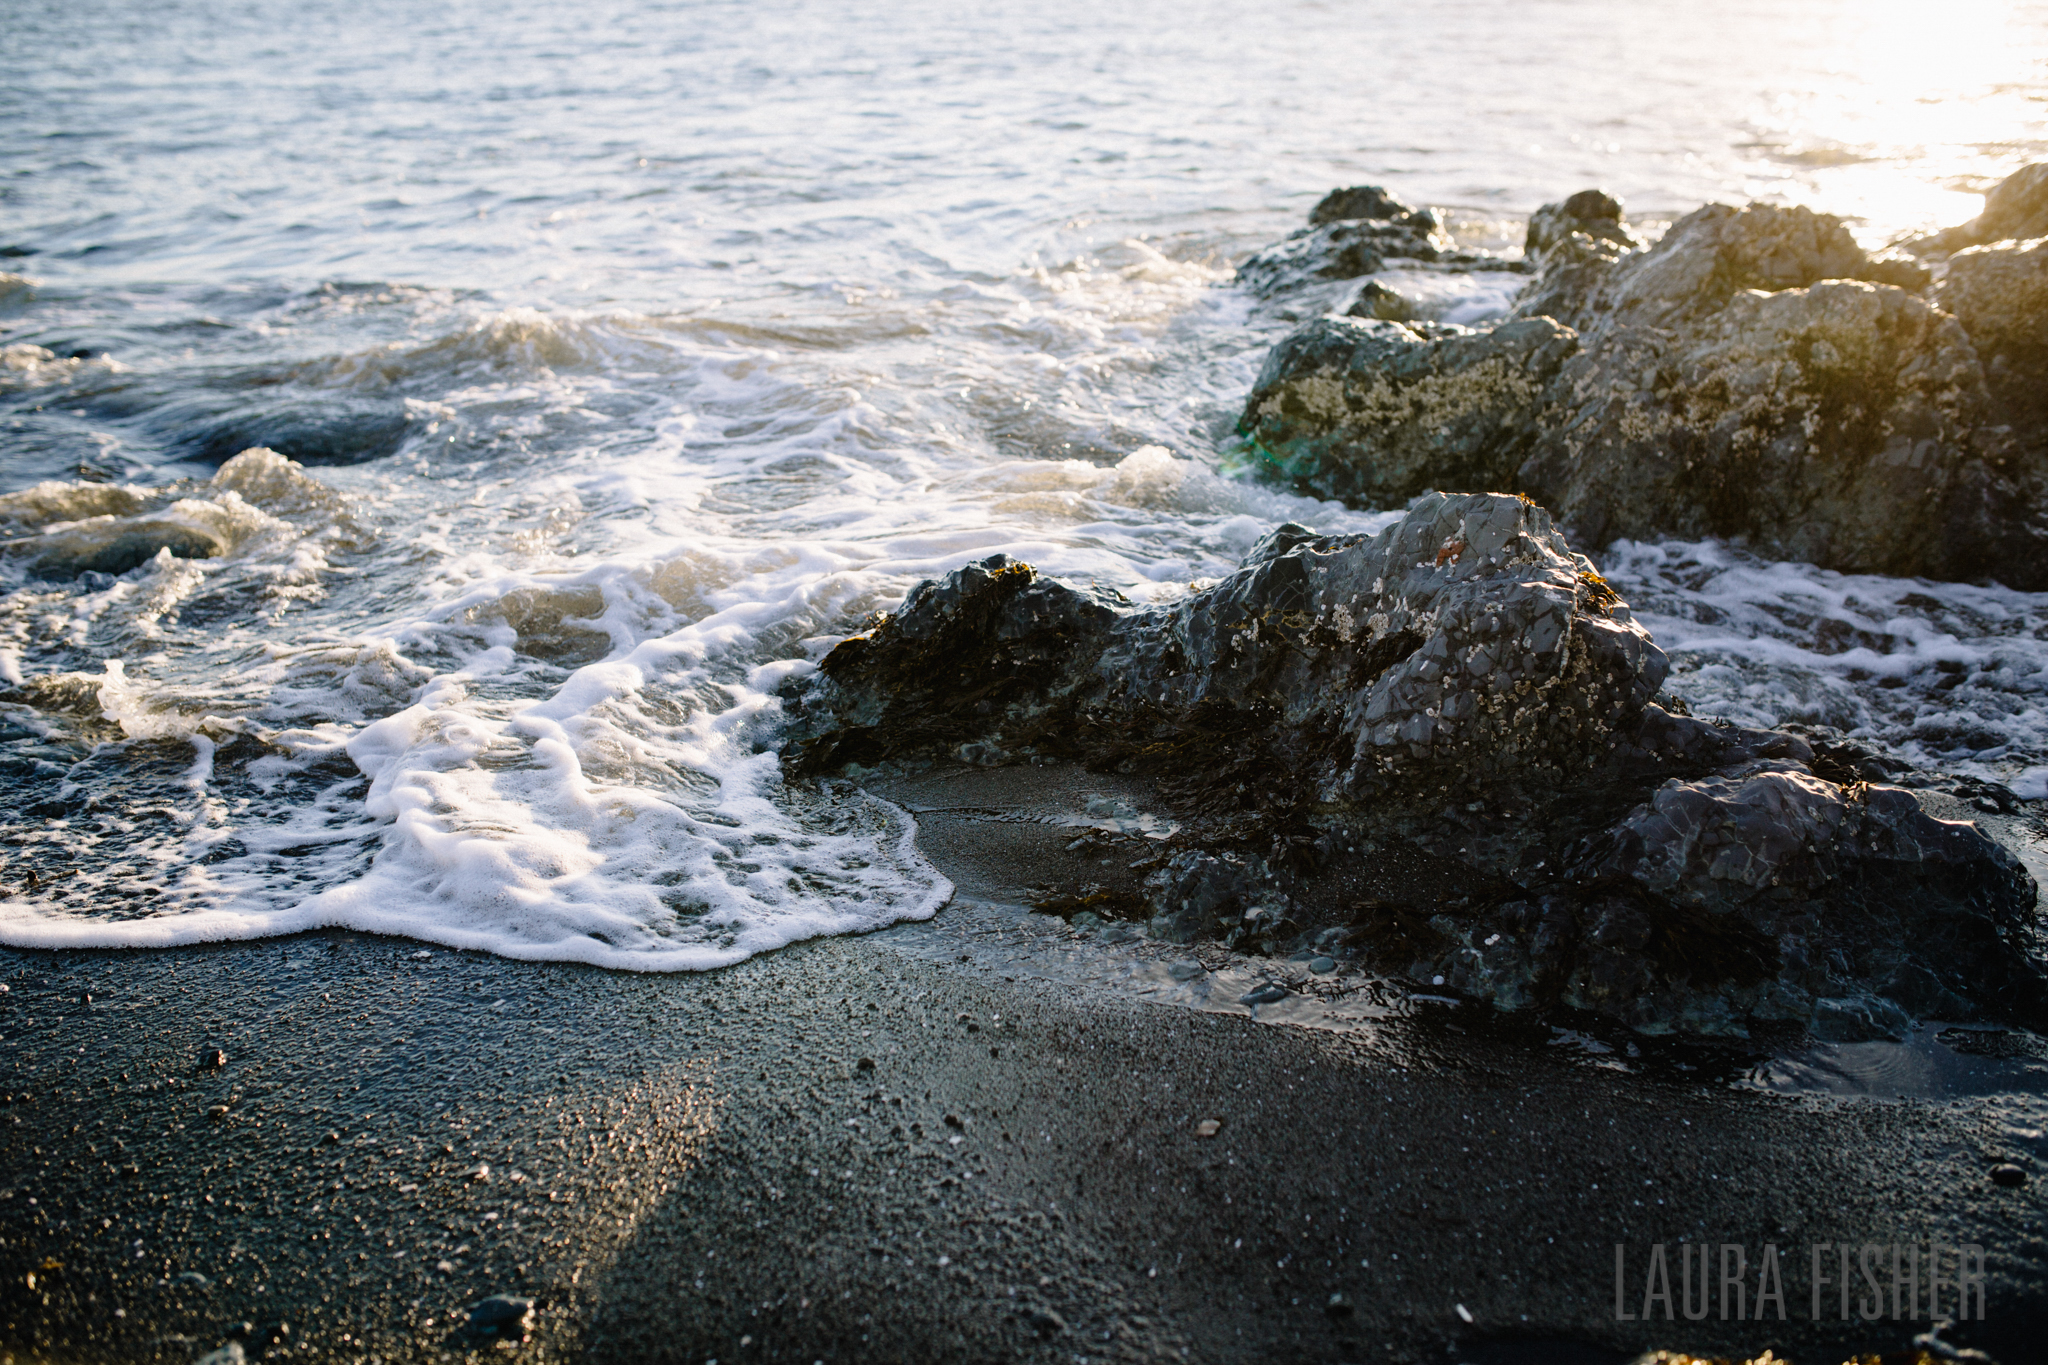 iceland-black-sand-beach-engagement-laura-fisher-photography-0009-2.jpg